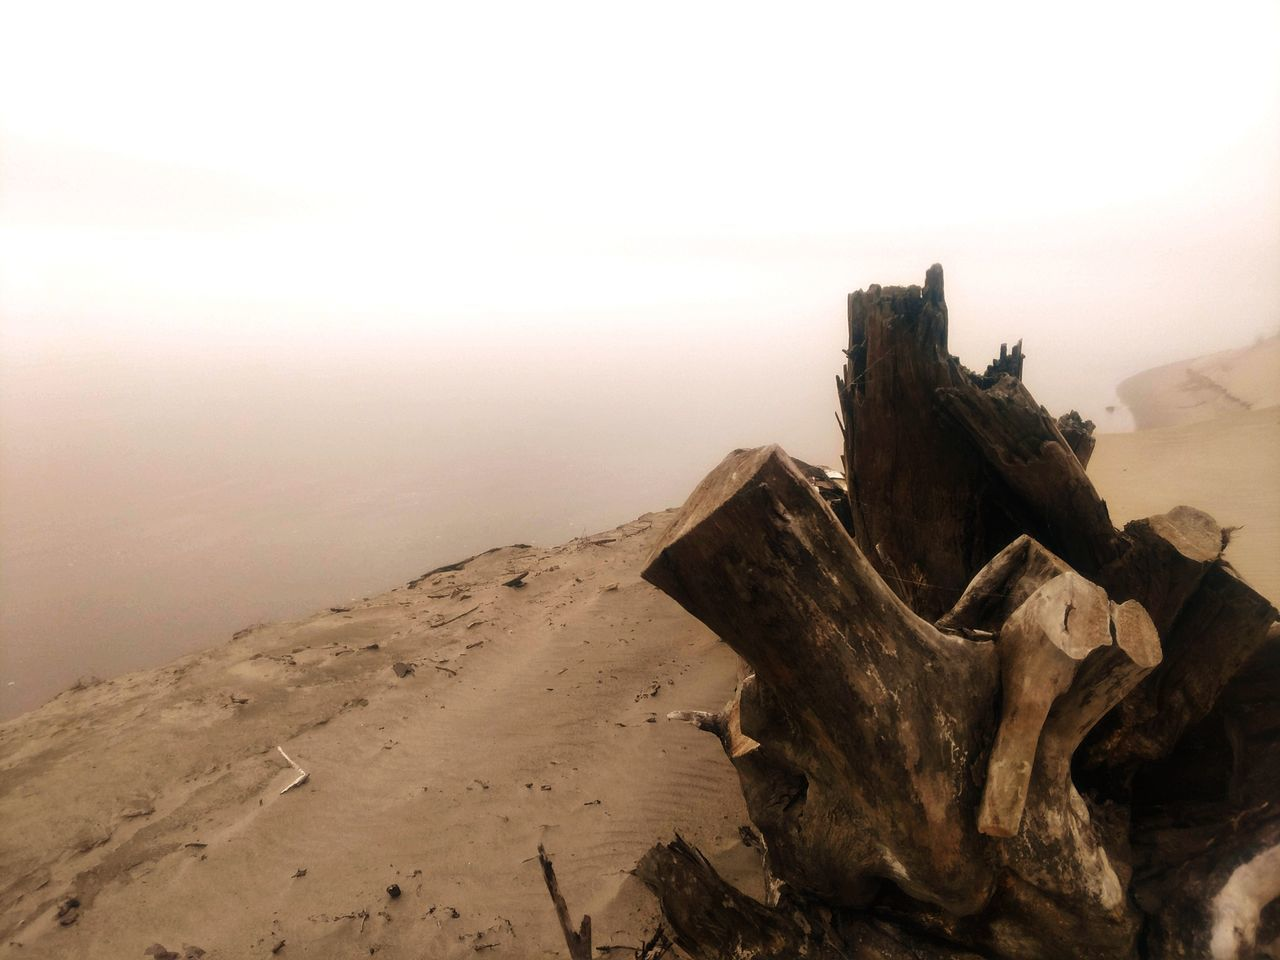 nature, tranquility, tranquil scene, scenics, no people, beauty in nature, outdoors, landscape, fog, sky, day, sea, sand, horizon over water, water, dead tree